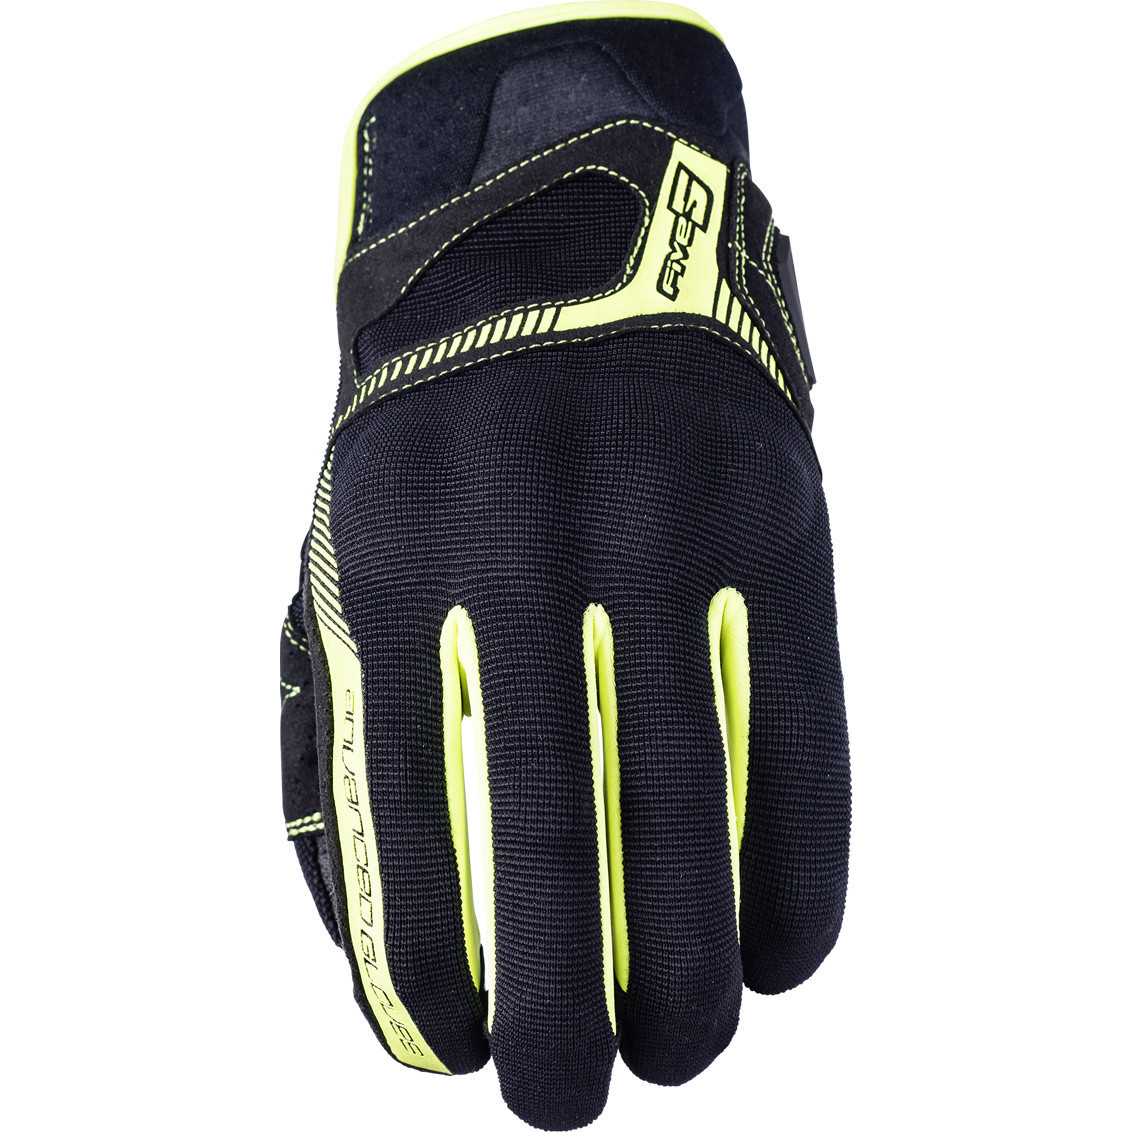 Five-RS3-Motorcycle-Gloves-Motorbike-Bike-Armour-Urban-Touch-Screen-GhostBikes thumbnail 5